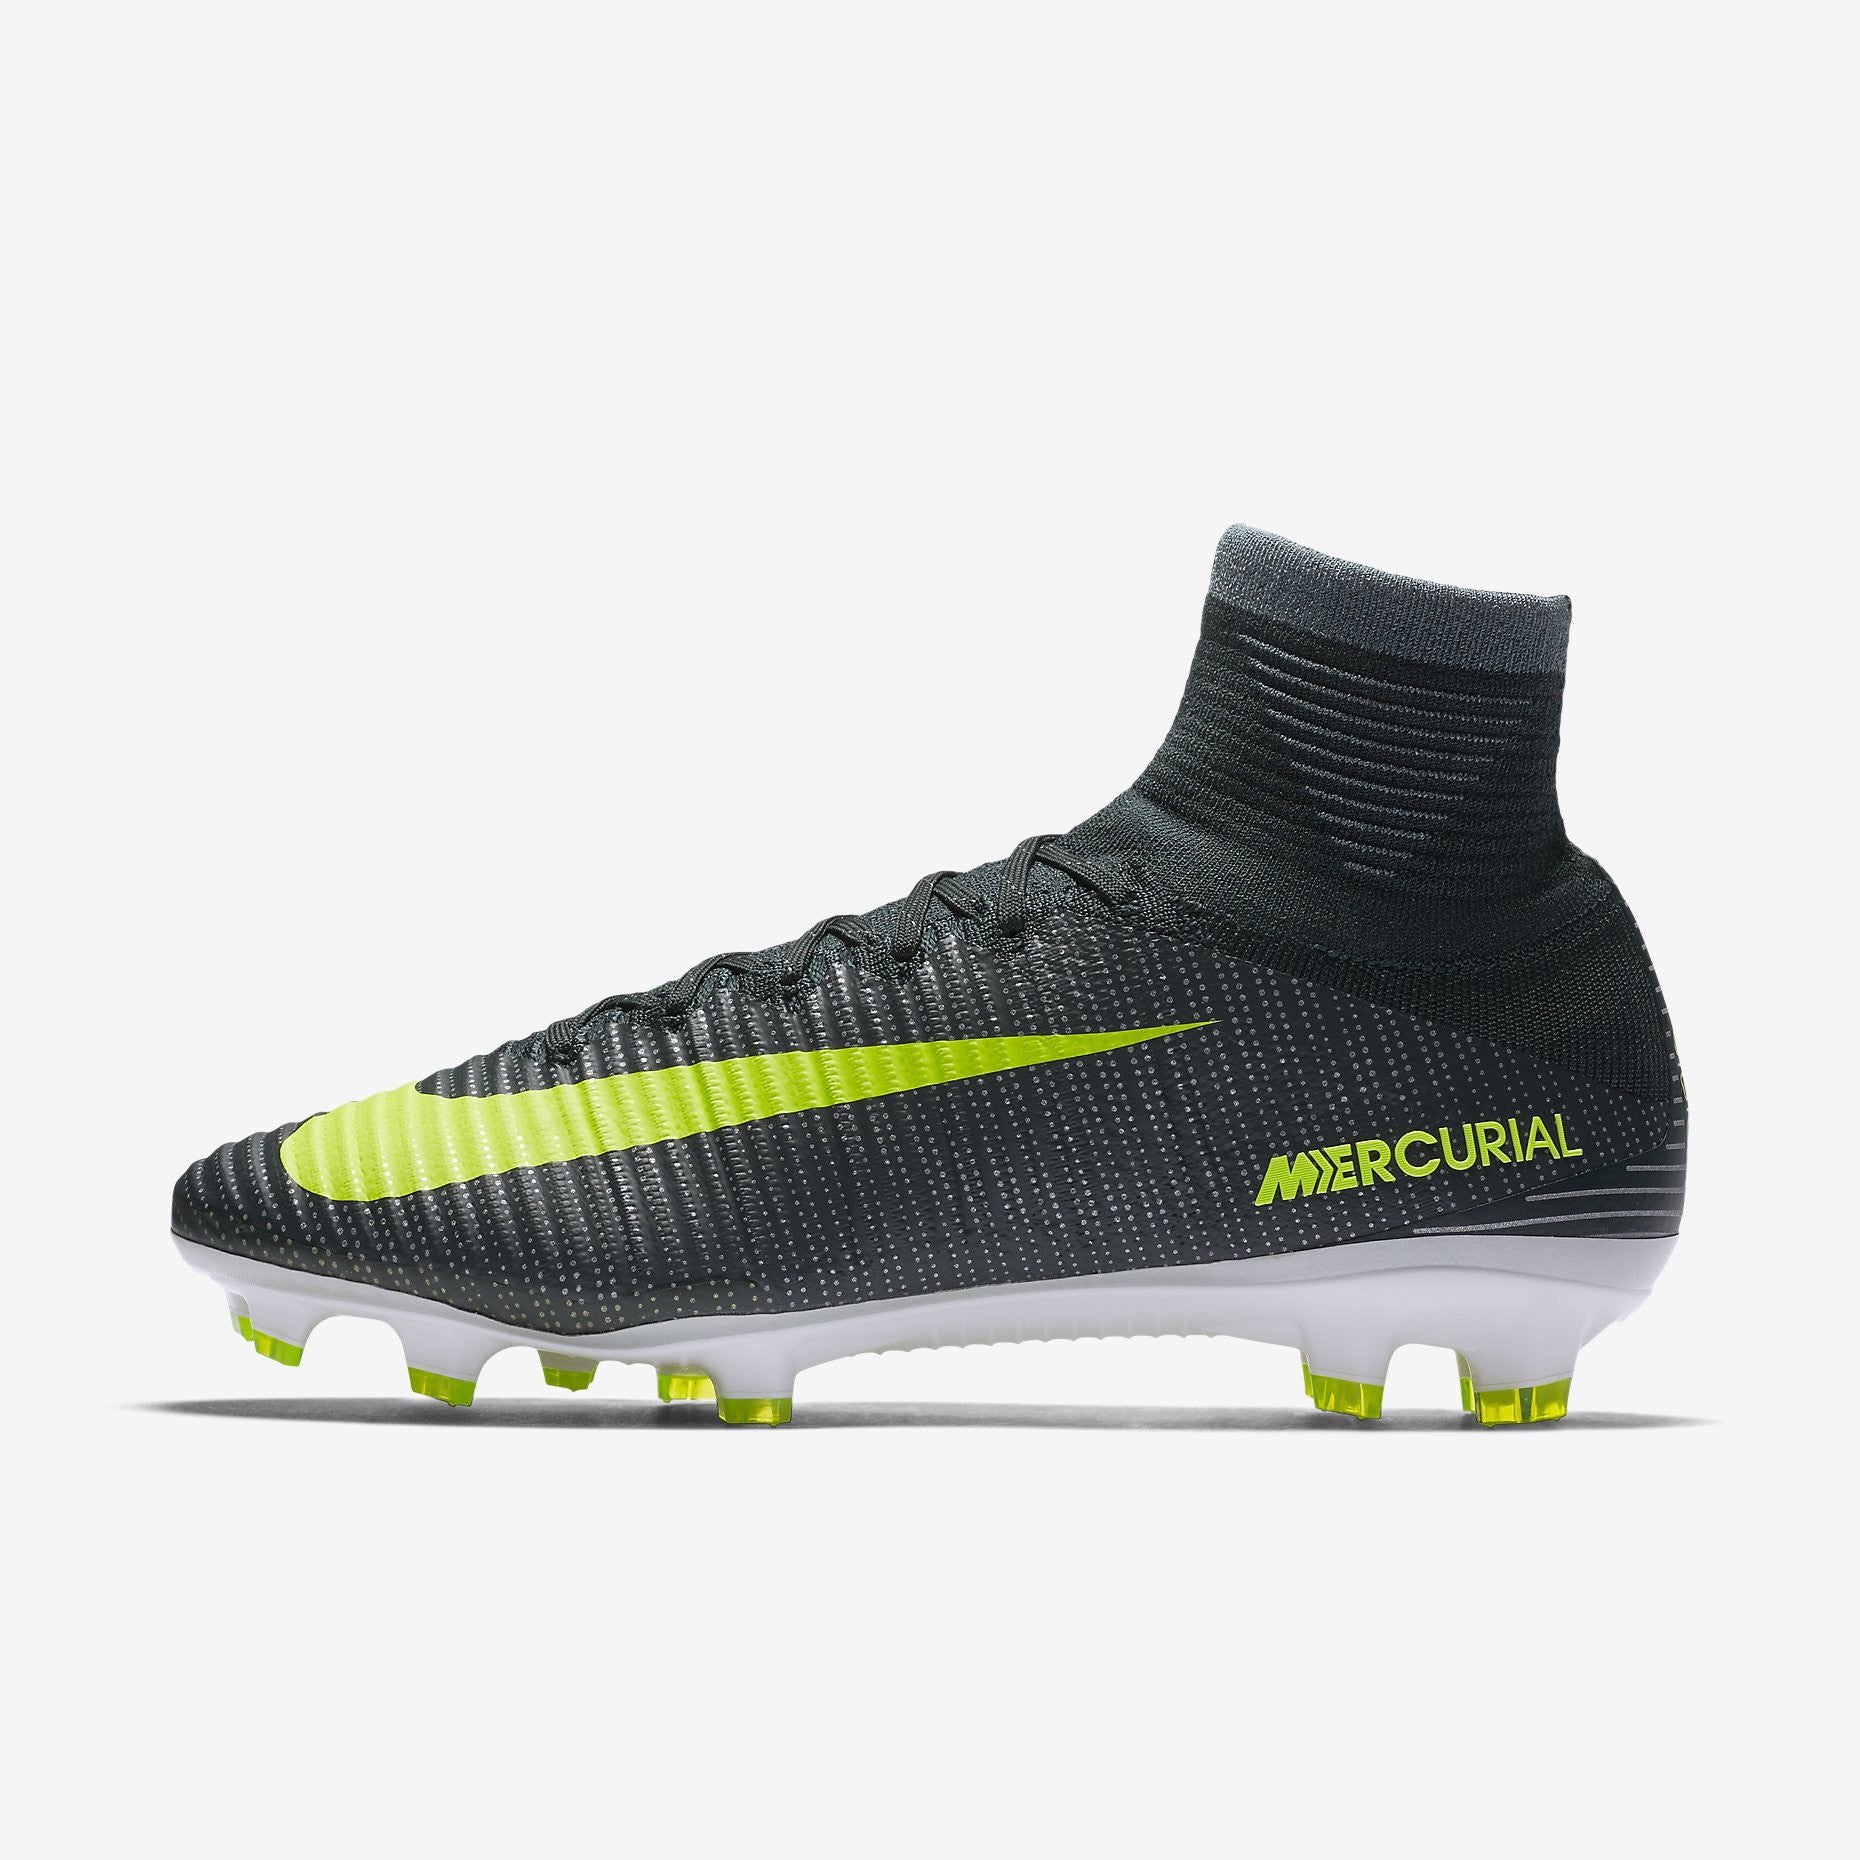 official photos the sale of shoes new specials all gray nike mercurial superfly v uk sko